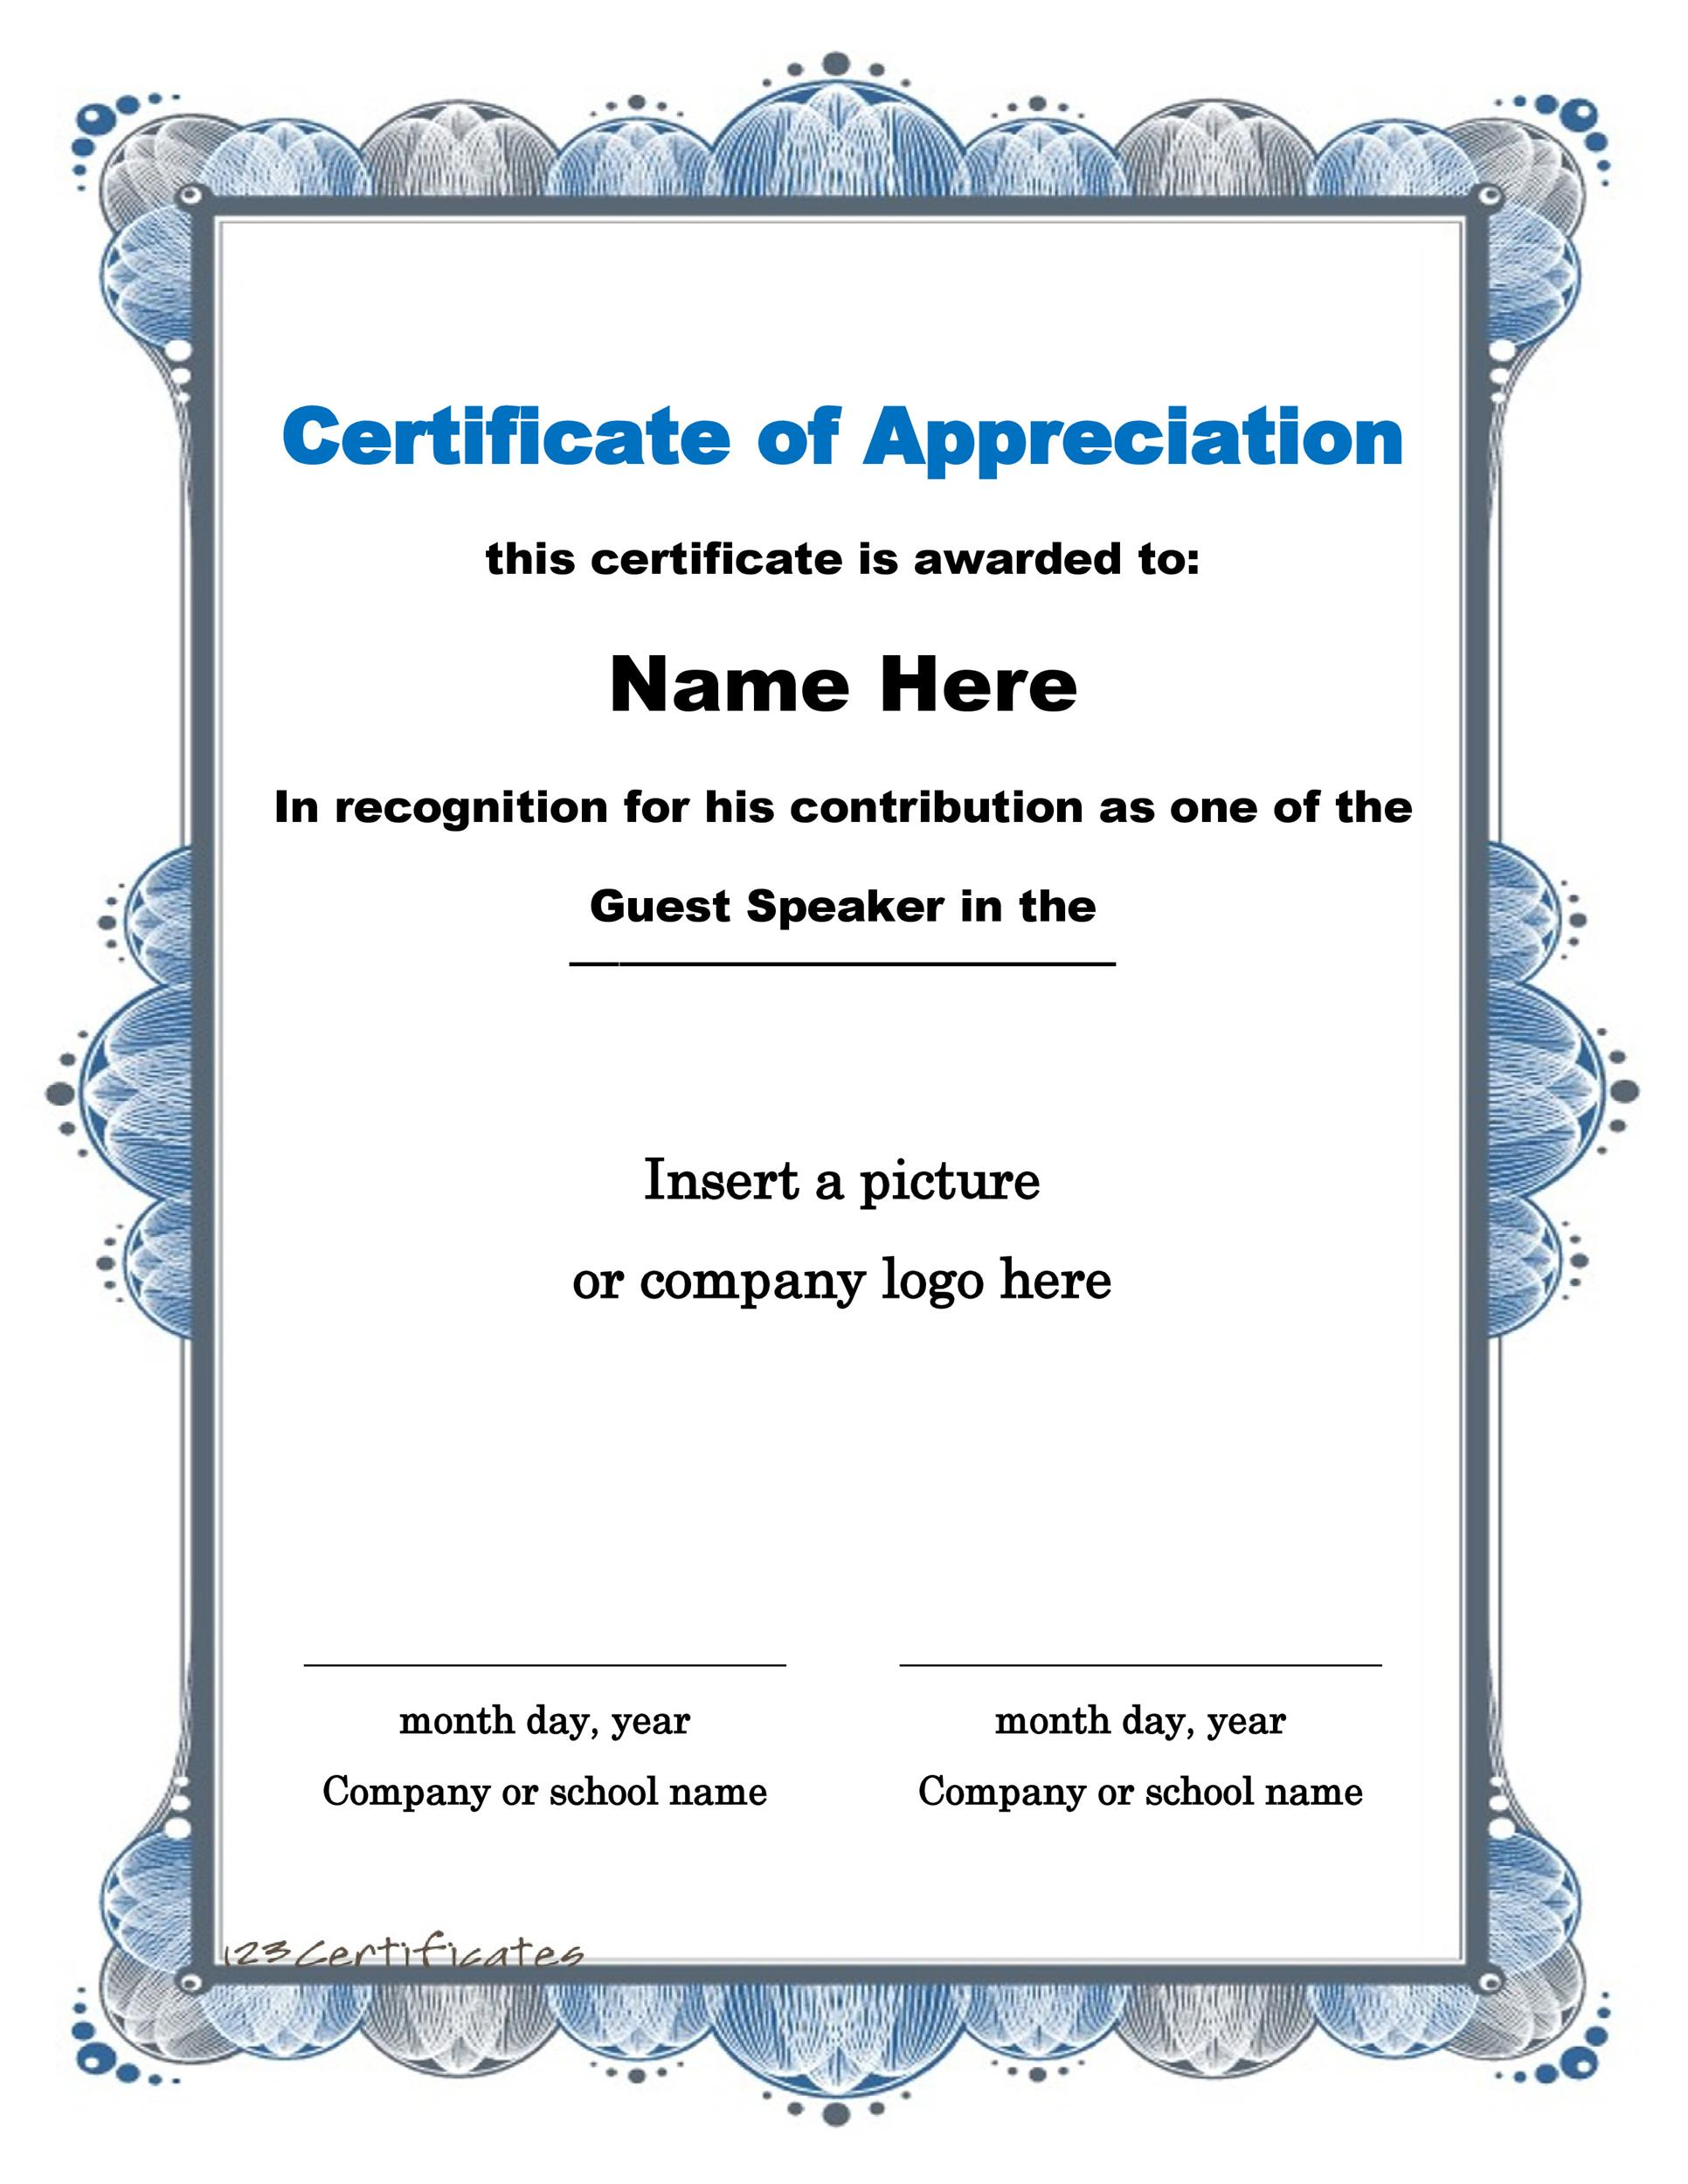 30 free certificate of appreciation templates and letters free certificate of appreciation 02 spiritdancerdesigns Choice Image